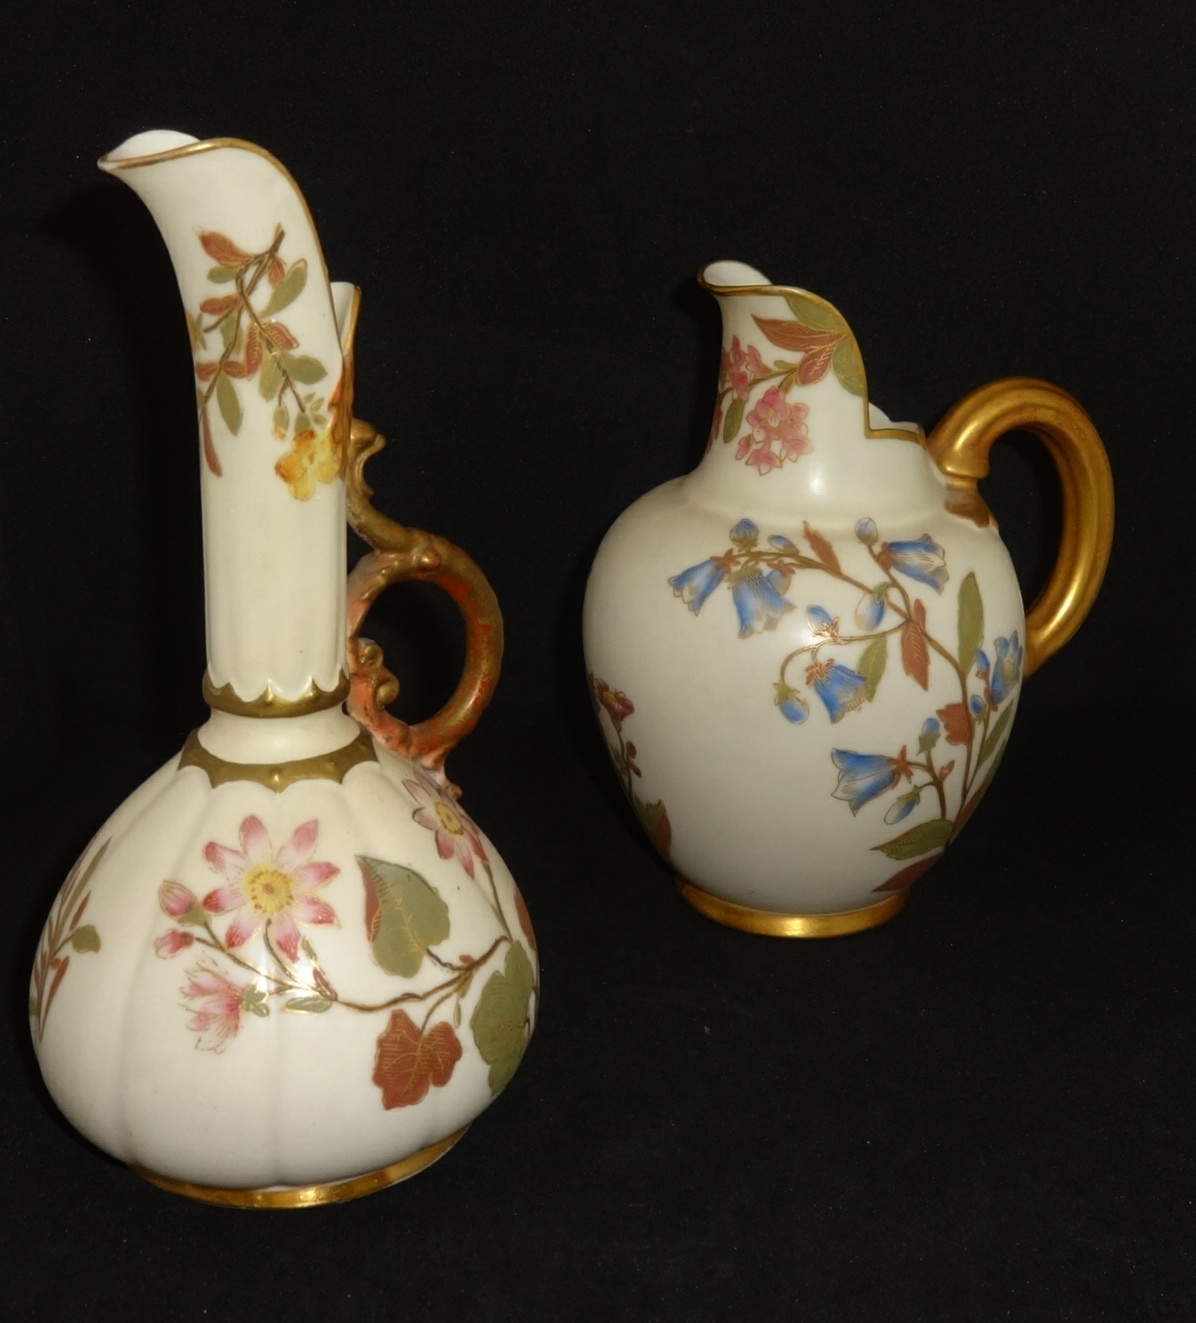 Lot 045 - Royal Worcester, two blush ivory jugs decorated with wild flowers, the tallest 16cm.